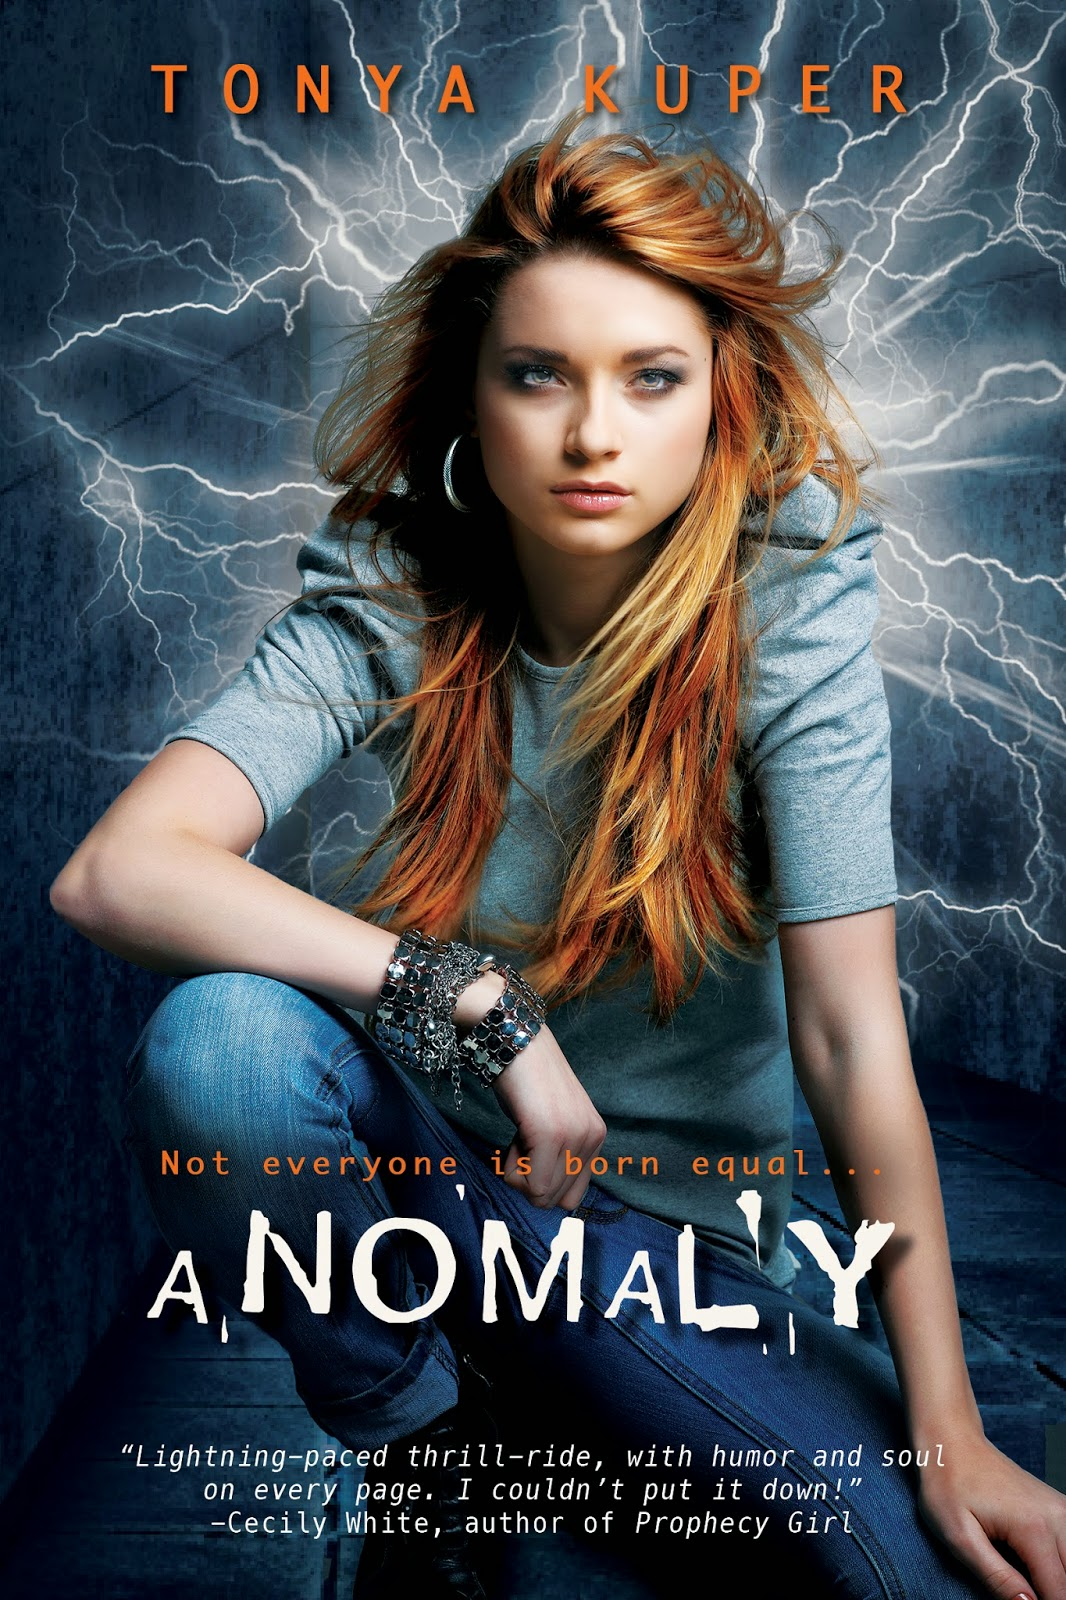 http://clevergirlsread.blogspot.com/2014/12/blog-tour-review-giveaway-anomaly.html